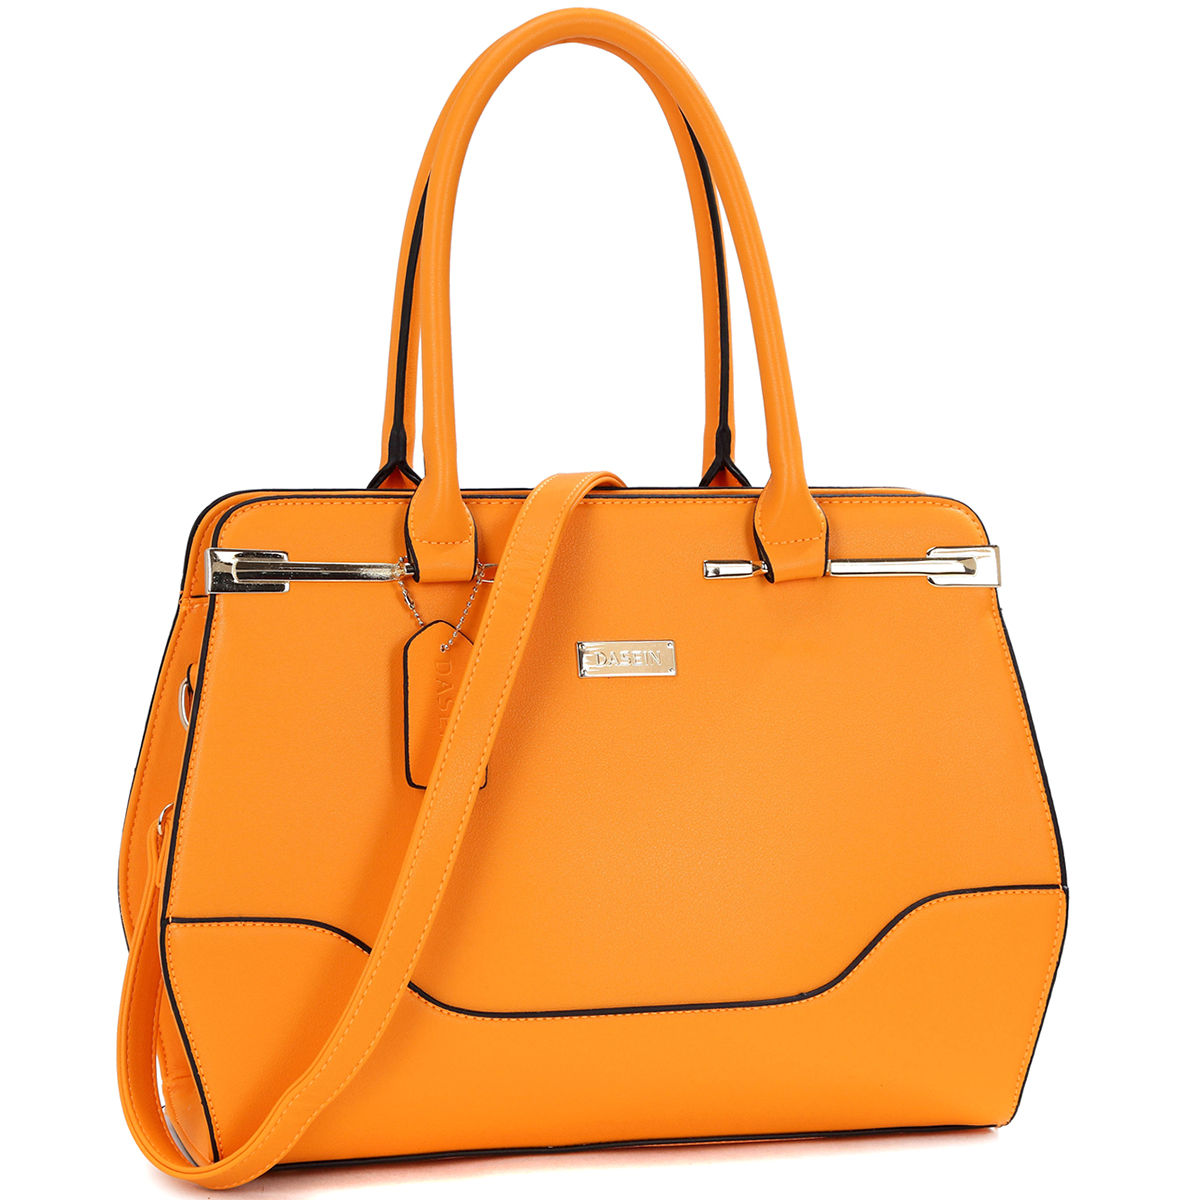 Fashion Faux Leather Gold-Tone Satchel